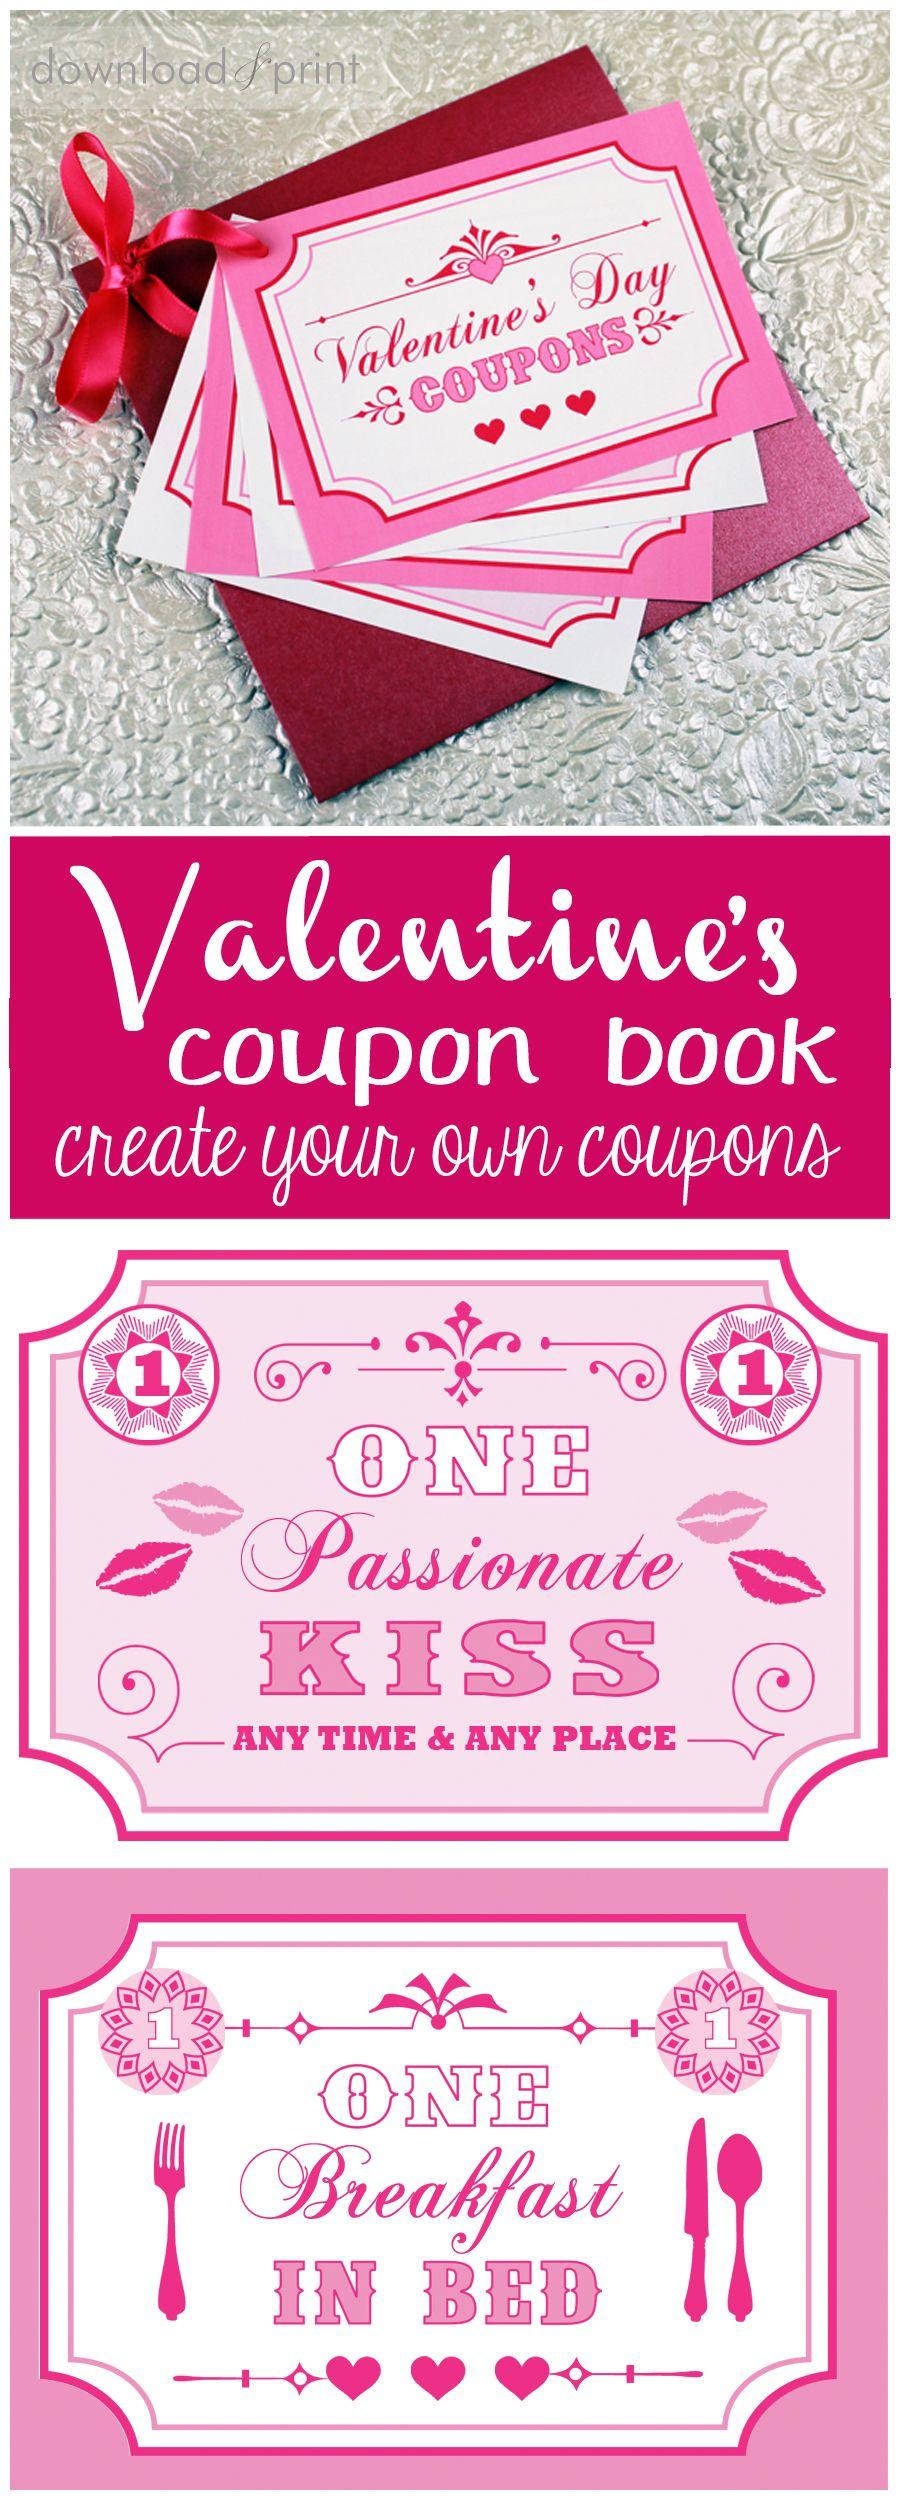 free printable coupon book for your sweetie use my coupon ideas or